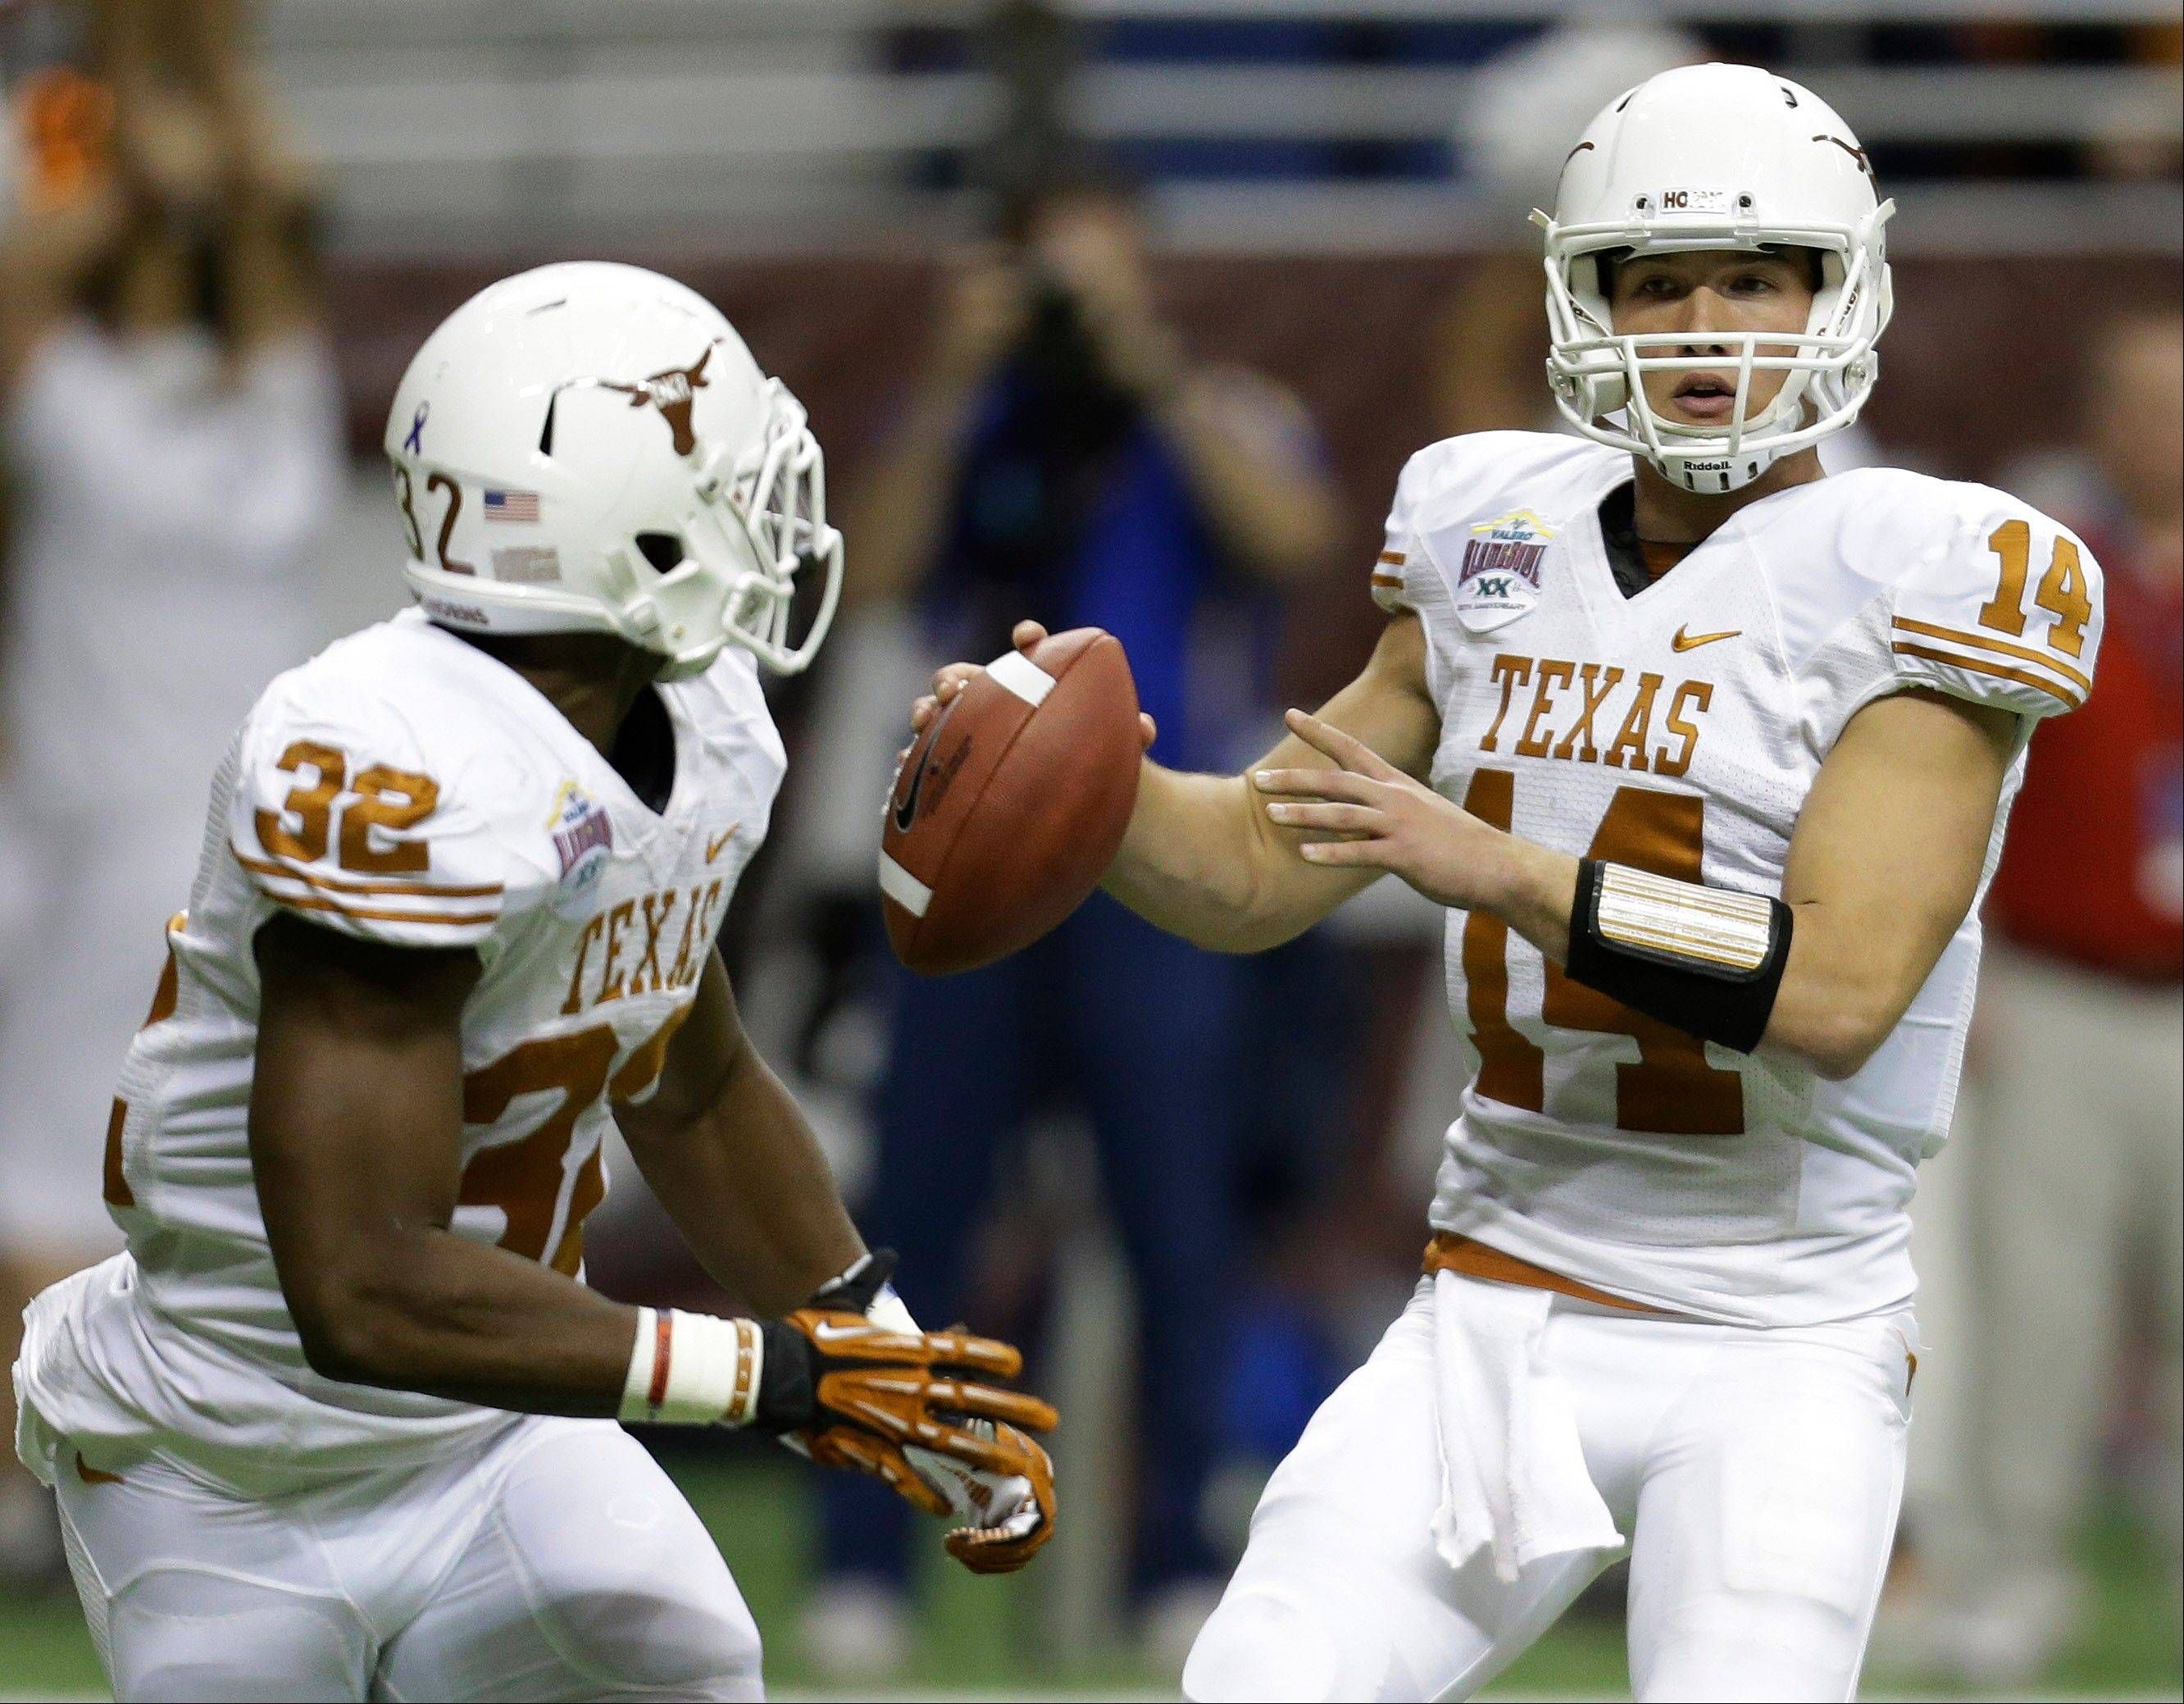 Texas' David Ash (14) looks to pass to Johnathan Gray (32) during the first quarter of the Alamo Bowl NCAA football game against Oregon State, Saturday, Dec. 29, 2012, in San Antonio.